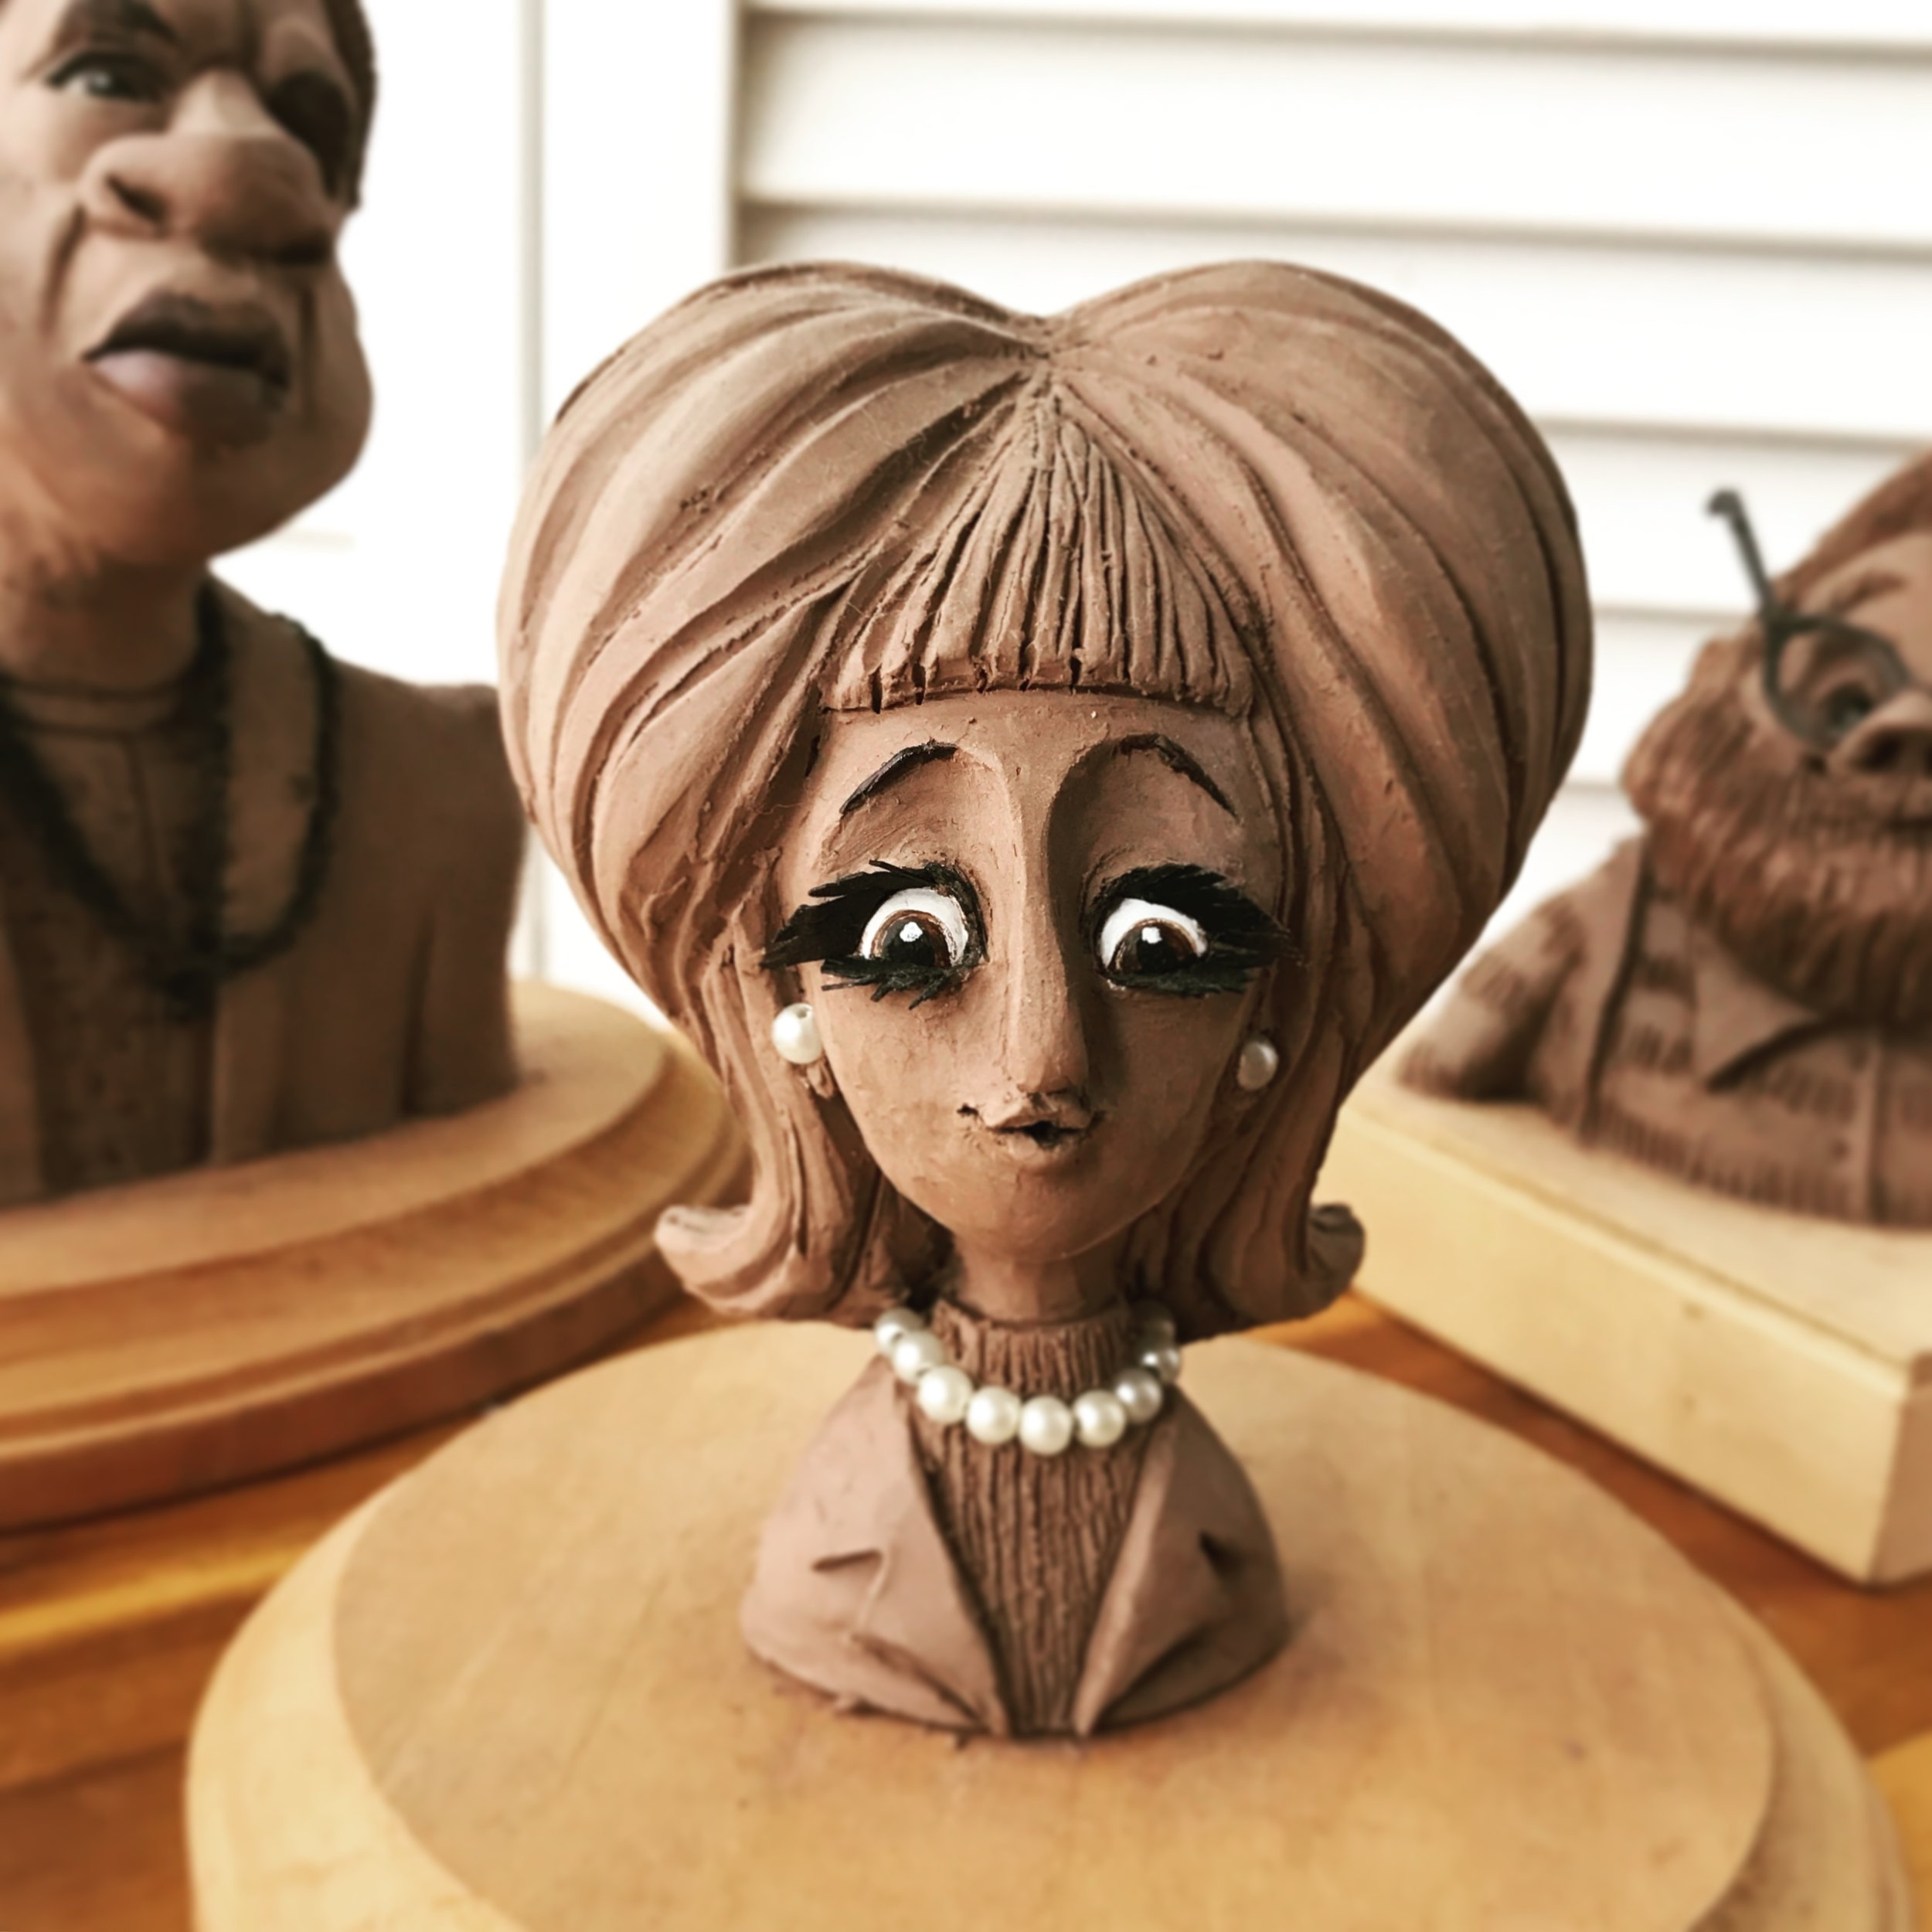 CHARACTER SCULPTURE - In this class, you'll sculpt your very own character out of clay. Through step-by-step instructions, you'll use traditional sculpting techniques and tools to make playful, kooky characters.